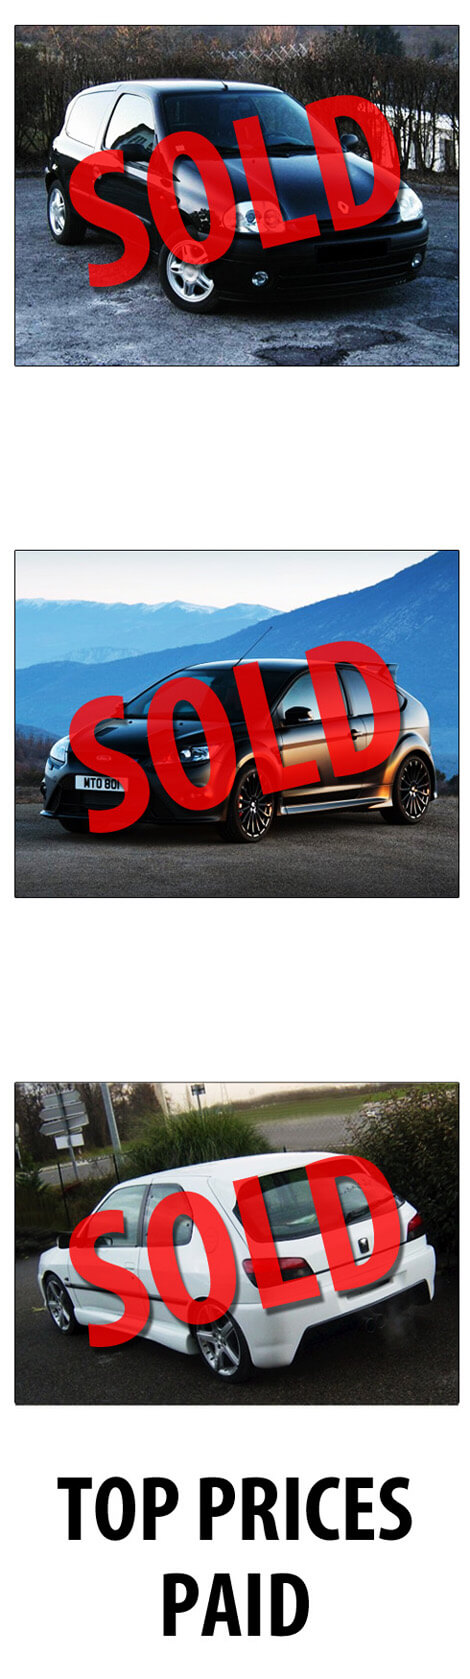 We Can Buy Your Car For Re-Sale And Pay Up To £5,000! MJ Recovery LTD